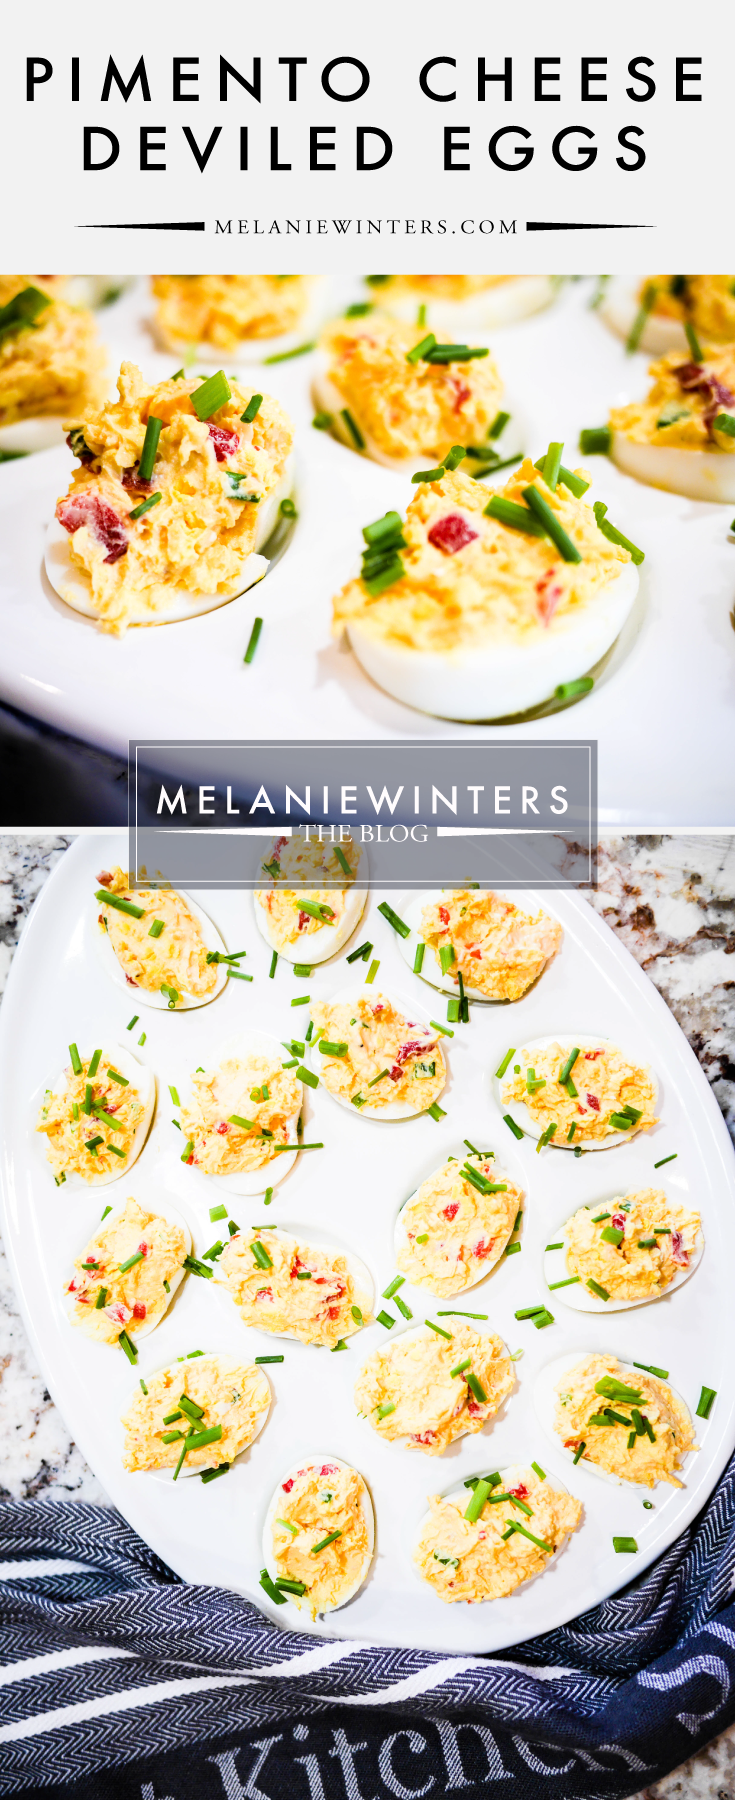 Paying homage to the greatest tradition in golf, these Pimento Cheese Deviled Eggs are perfect for your next Masters Party - or any other gathering for that matter.